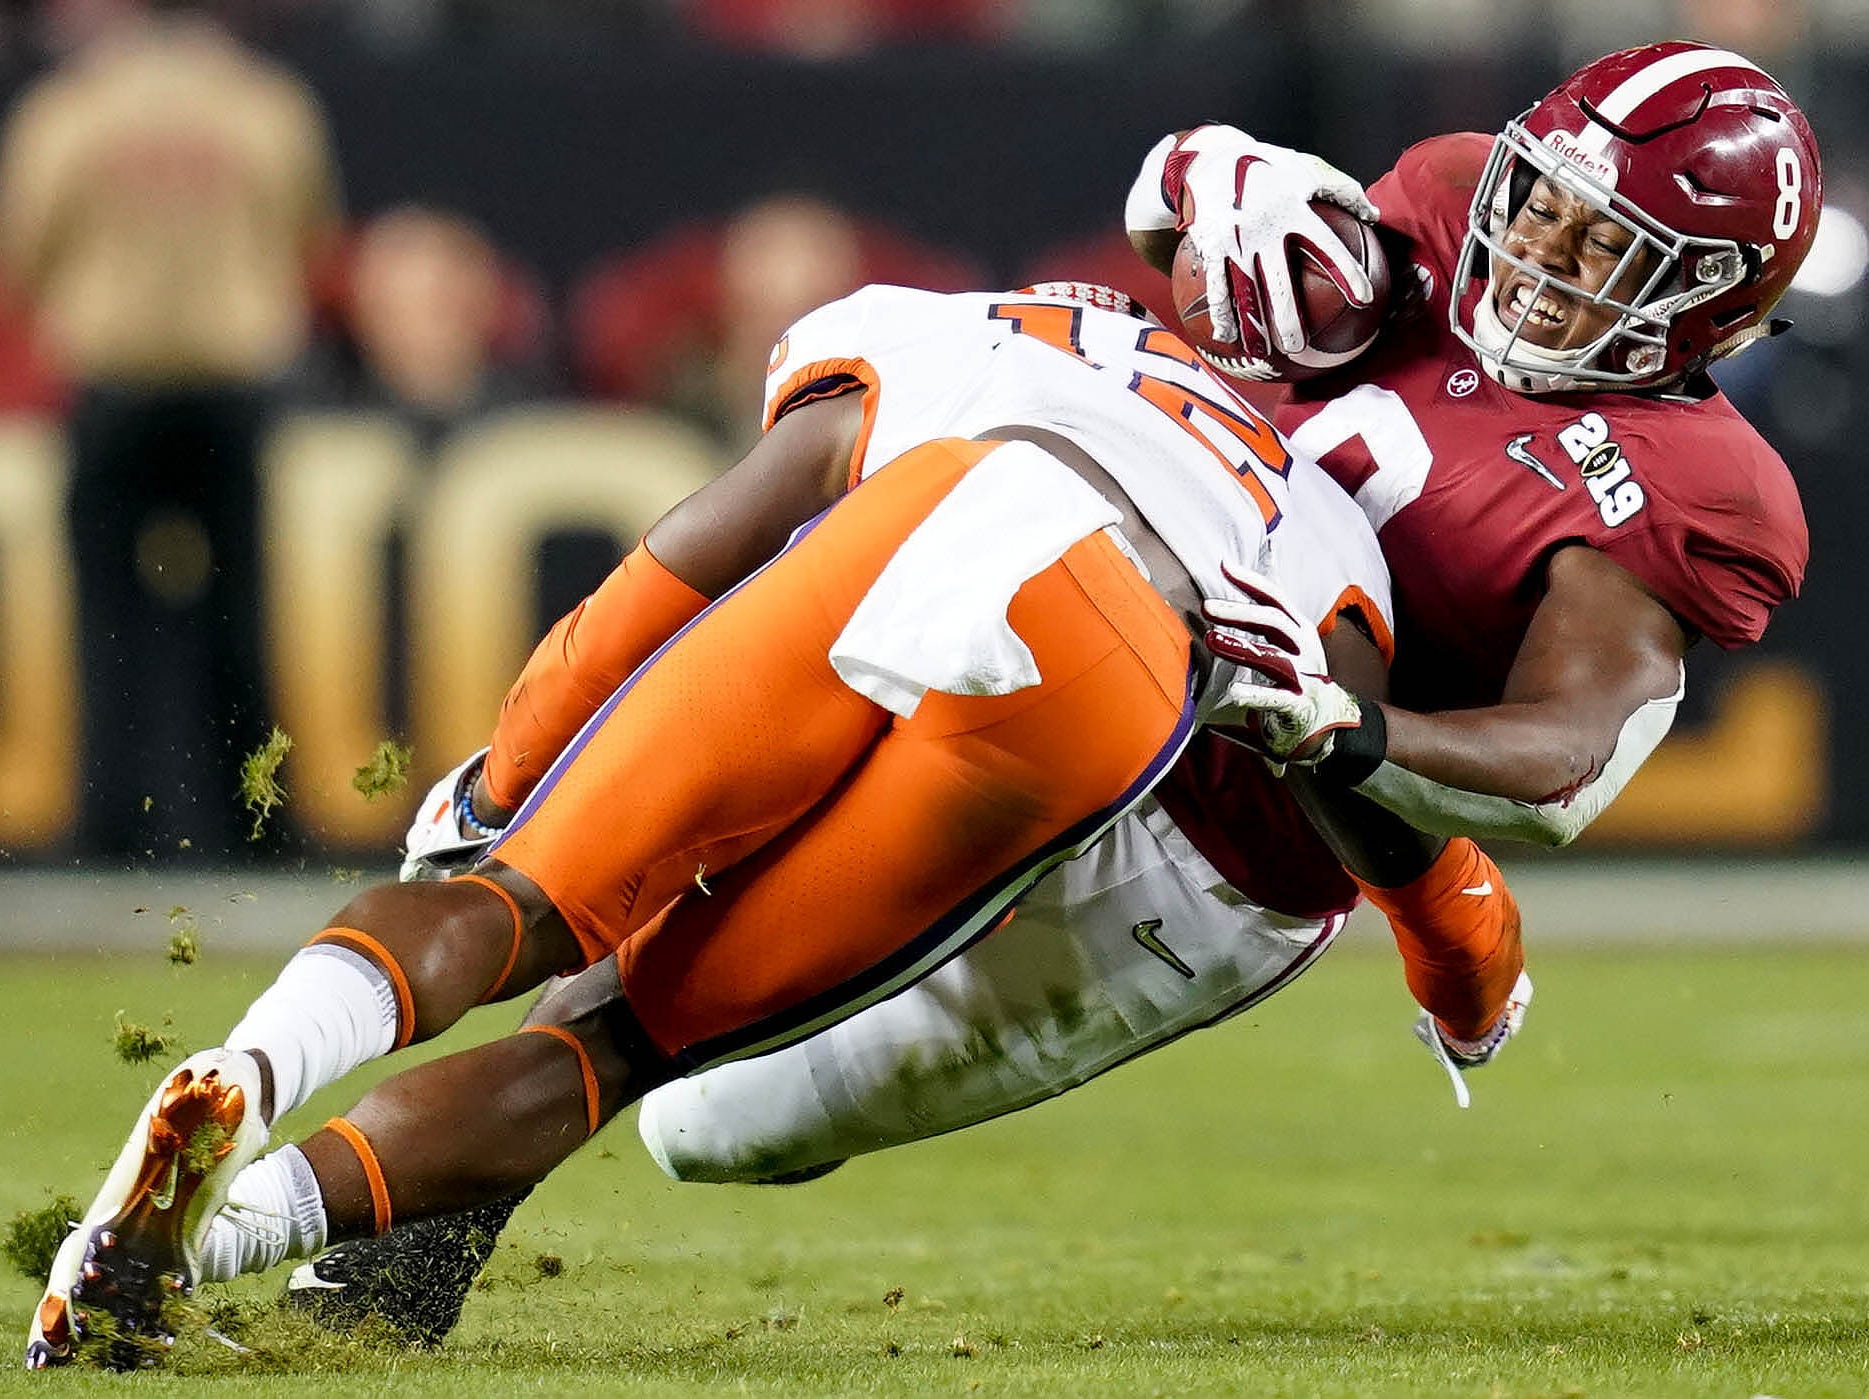 Jan 7, 2019; Santa Clara, CA, USA; Alabama Crimson Tide running back Josh Jacobs (8) is tackled by Clemson Tigers defensive back K'Von Wallace (12) during the second quarter in the 2019 College Football Playoff Championship game at Levi's Stadium. Mandatory Credit: Kyle Terada-USA TODAY Sports